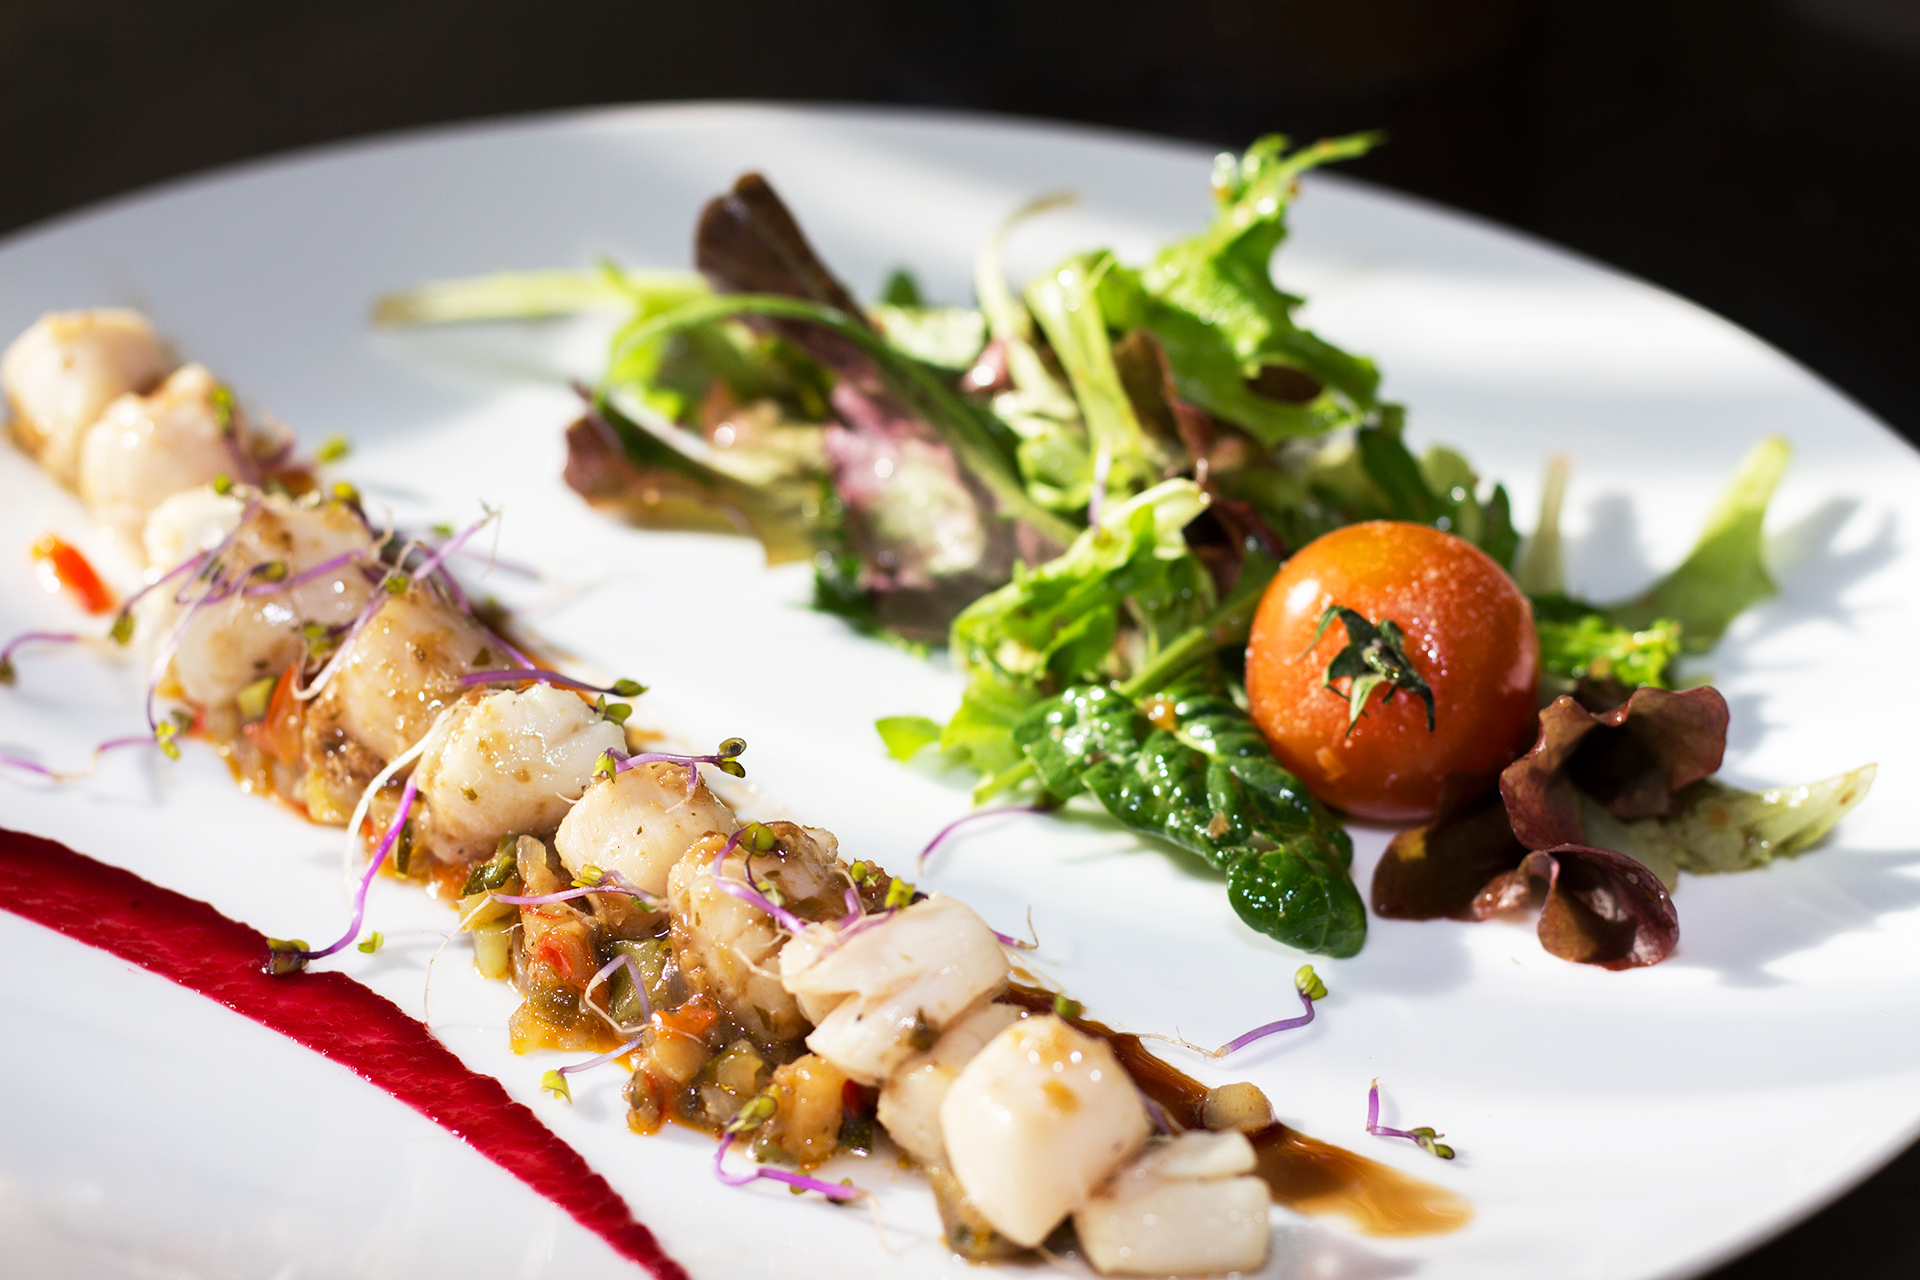 Le pavillon restaurant traditionnel saint herblain 44 - Cuisine plus saint herblain ...